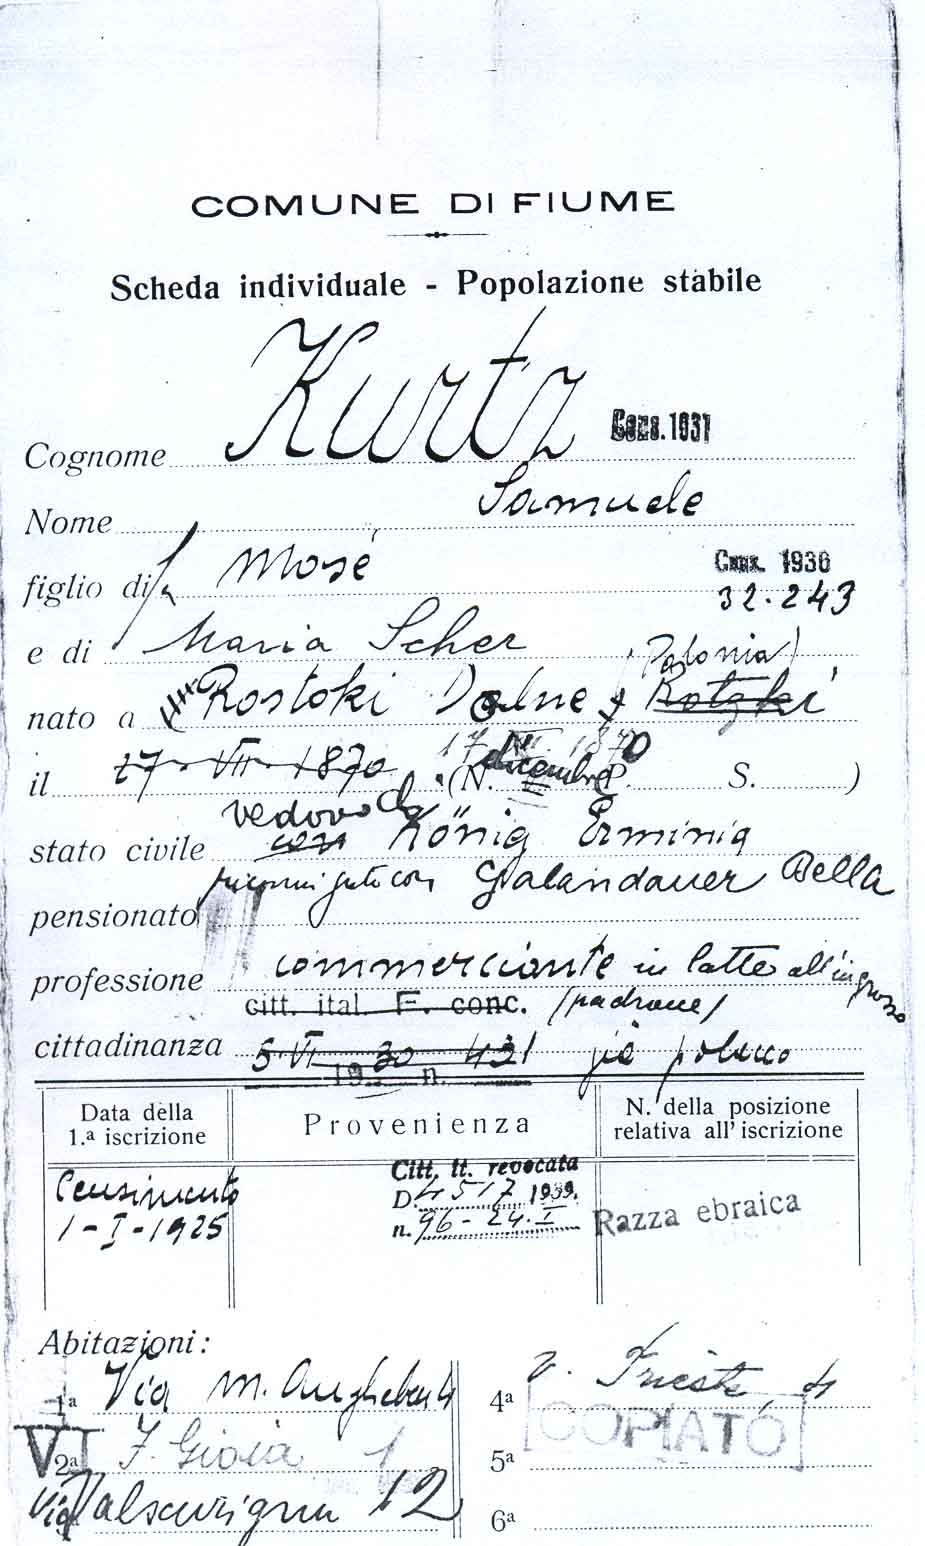 Dokument Samuel Kurtz 1930, Rijeka Civil Office Registers